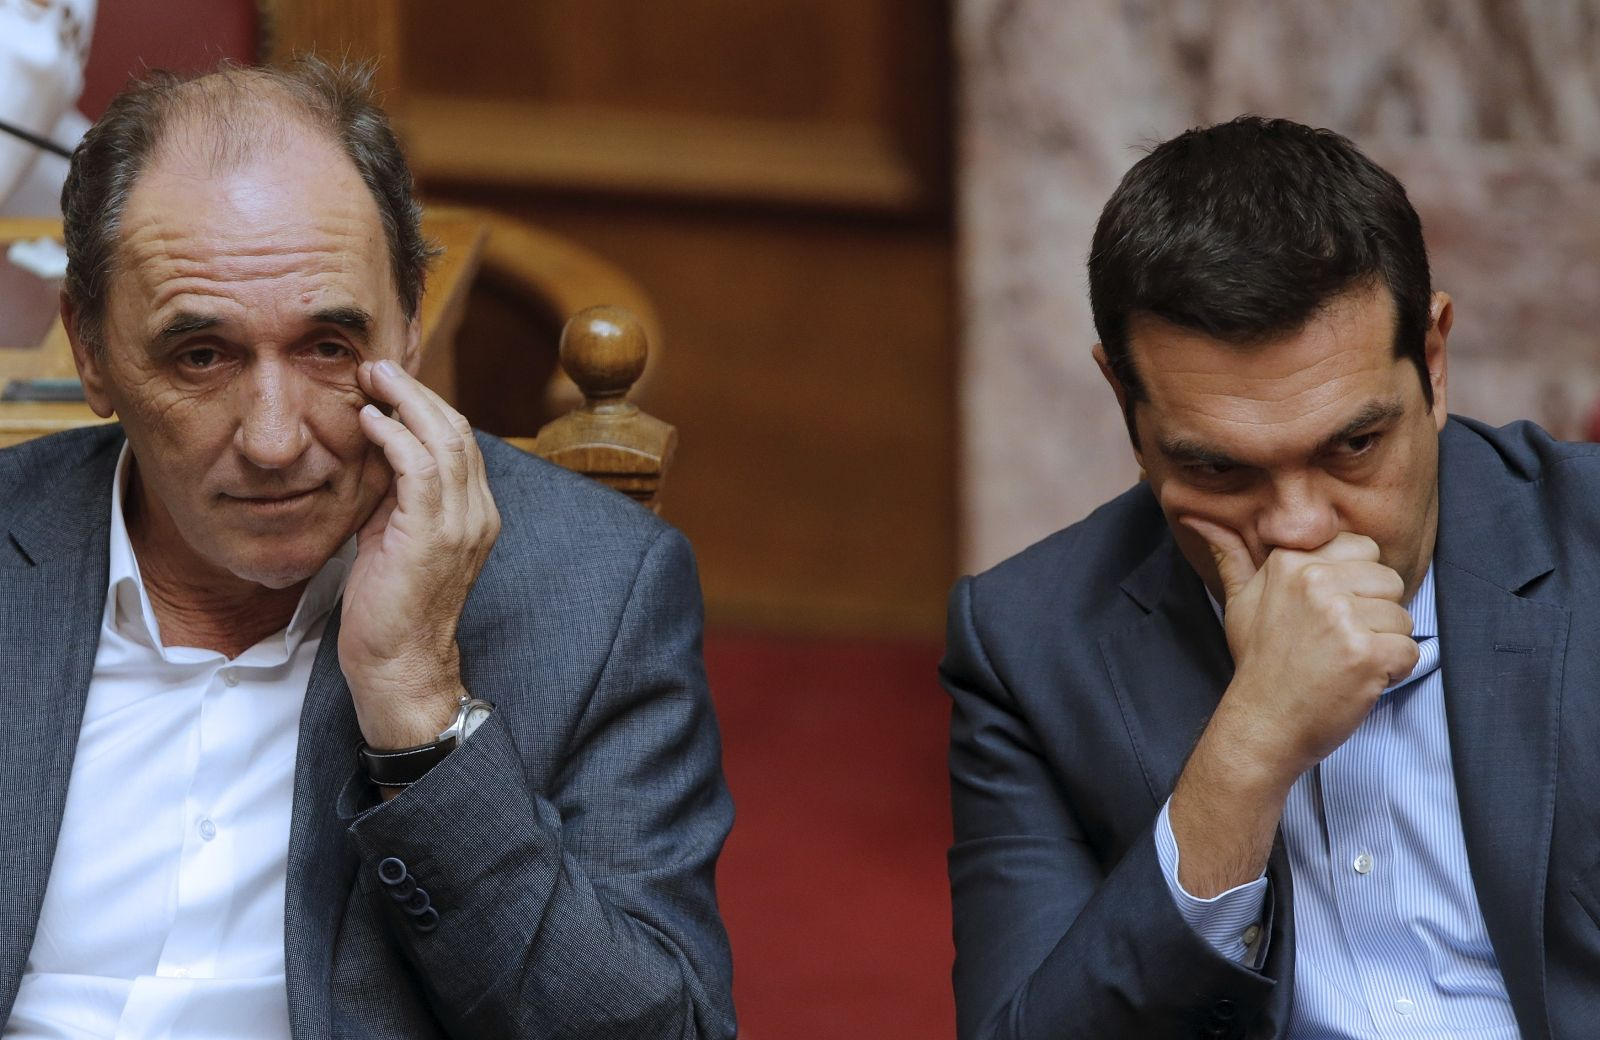 Greece approves Tsipras bailout